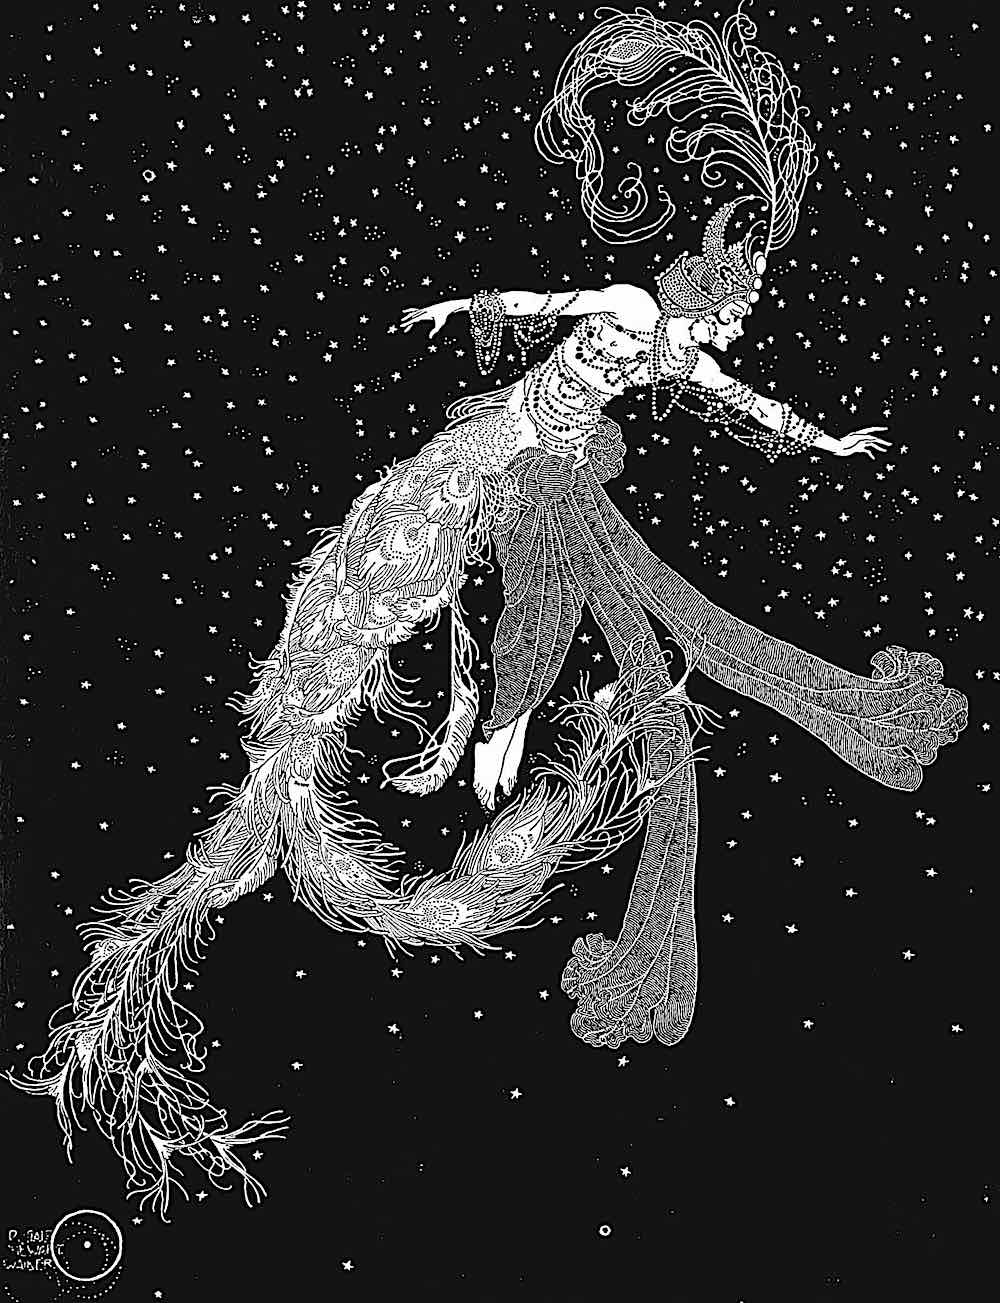 a Dugold Stewart Walker illustration of a dancer in the night sky with stars